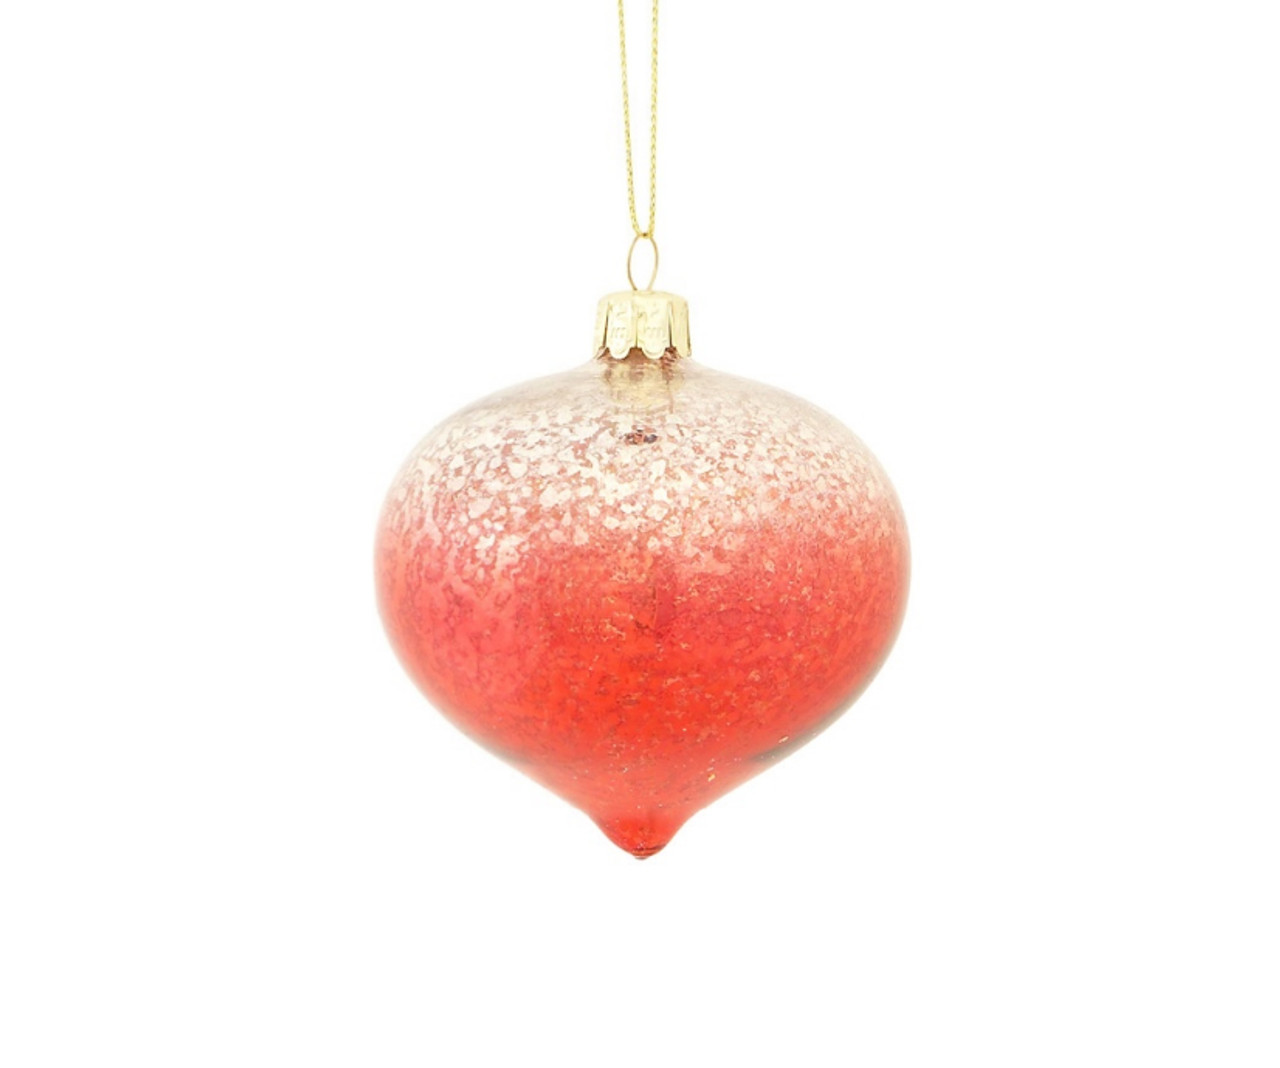 3 crimson red and silver ombre mercury glass onion shaped finial christmas ornament 31453174 - Red And Silver Christmas Ornaments